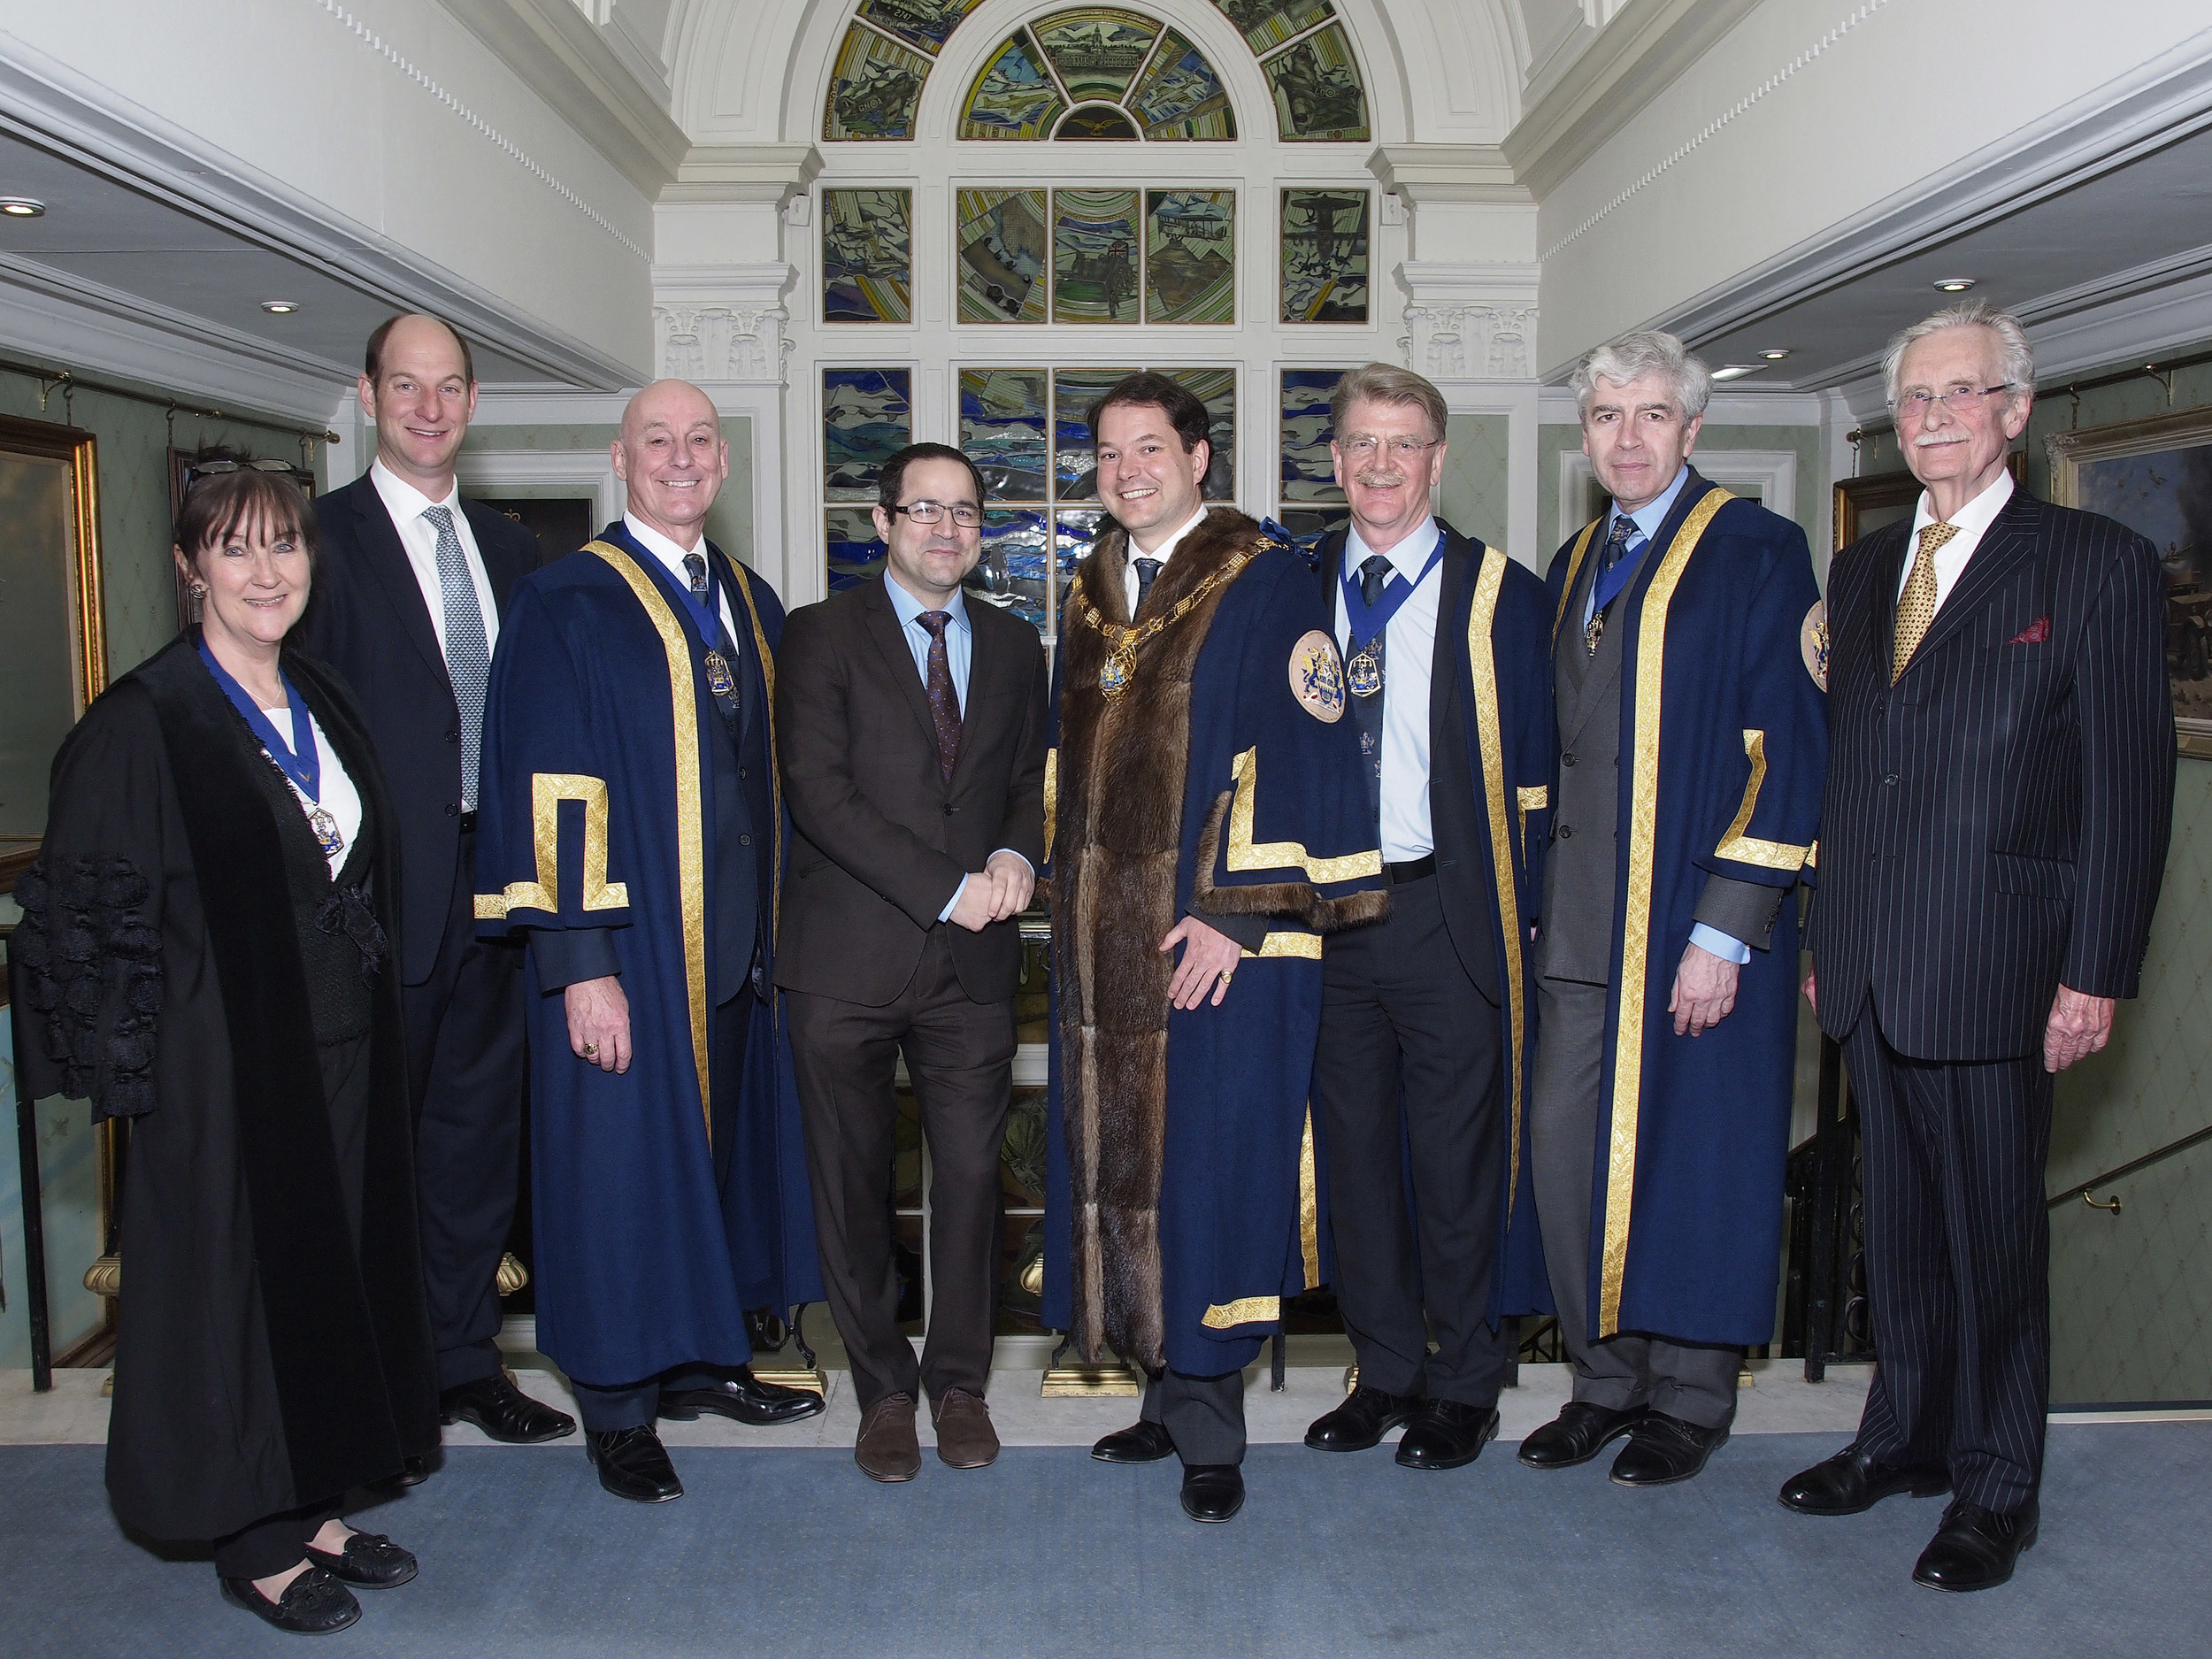 Master, Wardens, Clerk, Hagai Segal and Sponsors from QCIC  © Gerald Sharp Photography